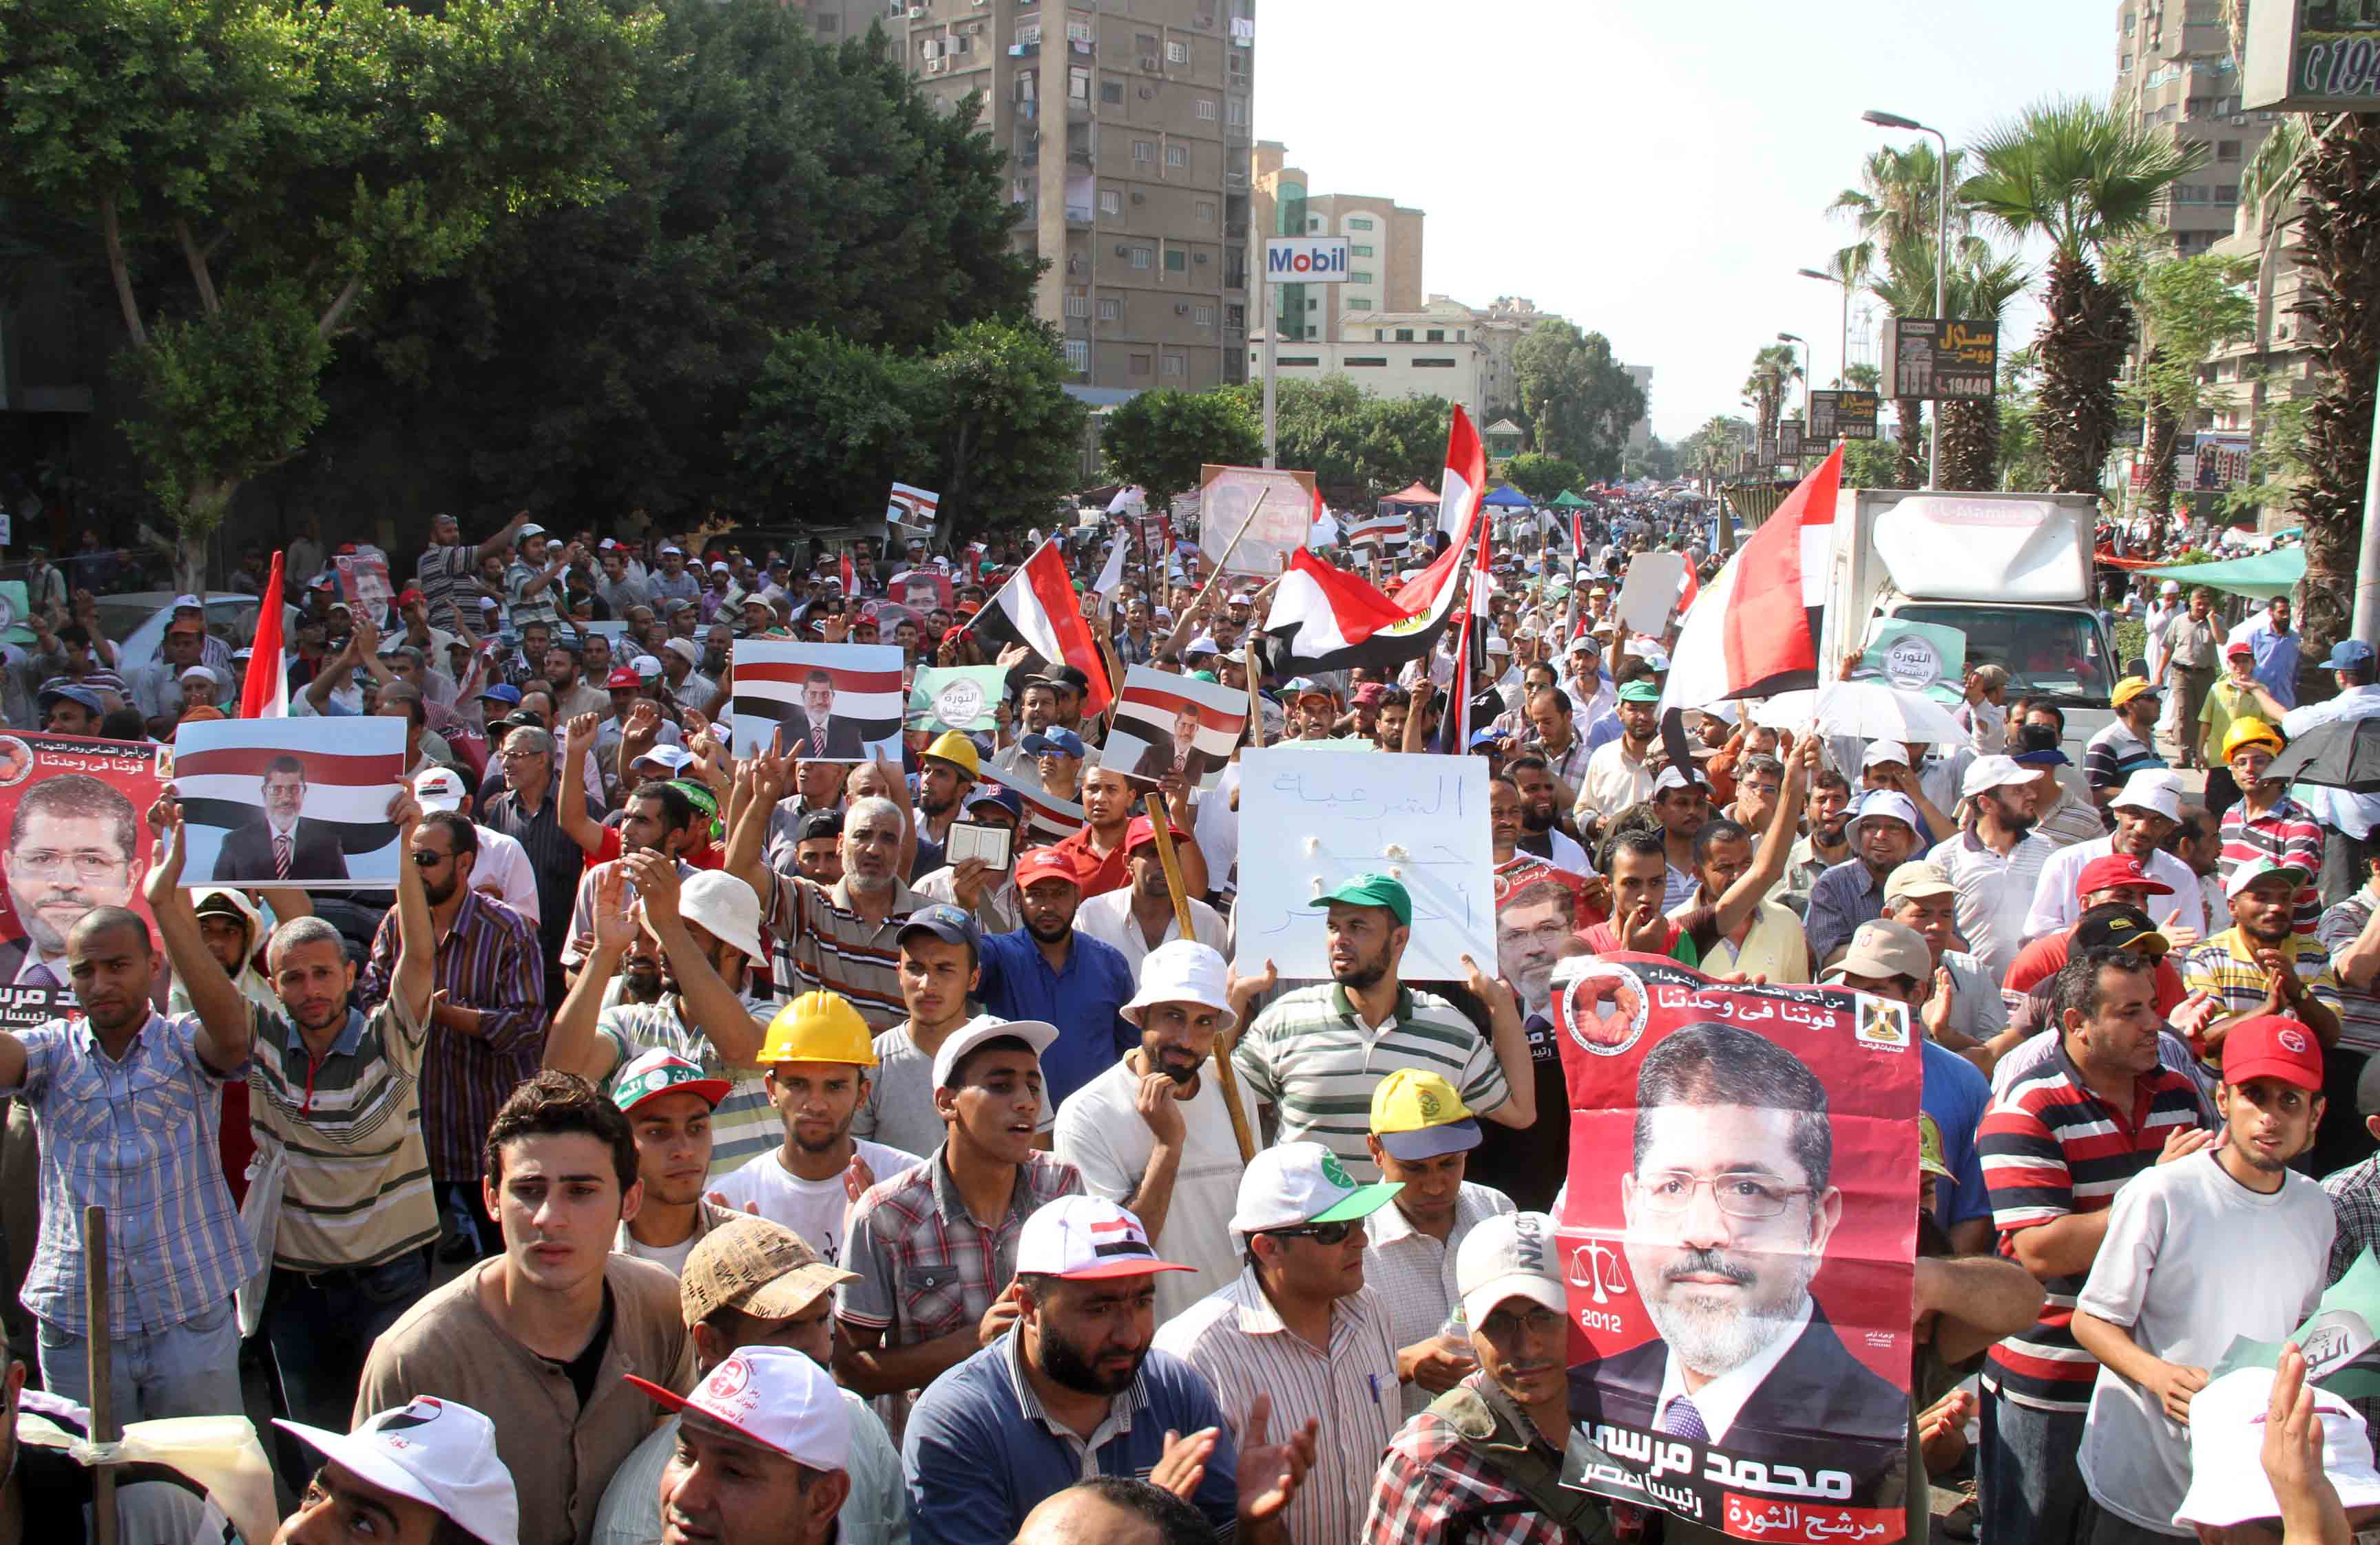 Pro-Morsi demonstrators are participating in sit-ins around the Rabaa Al-Adaweya Mosque in Nasr city. (Photo by Mohamed Omar)